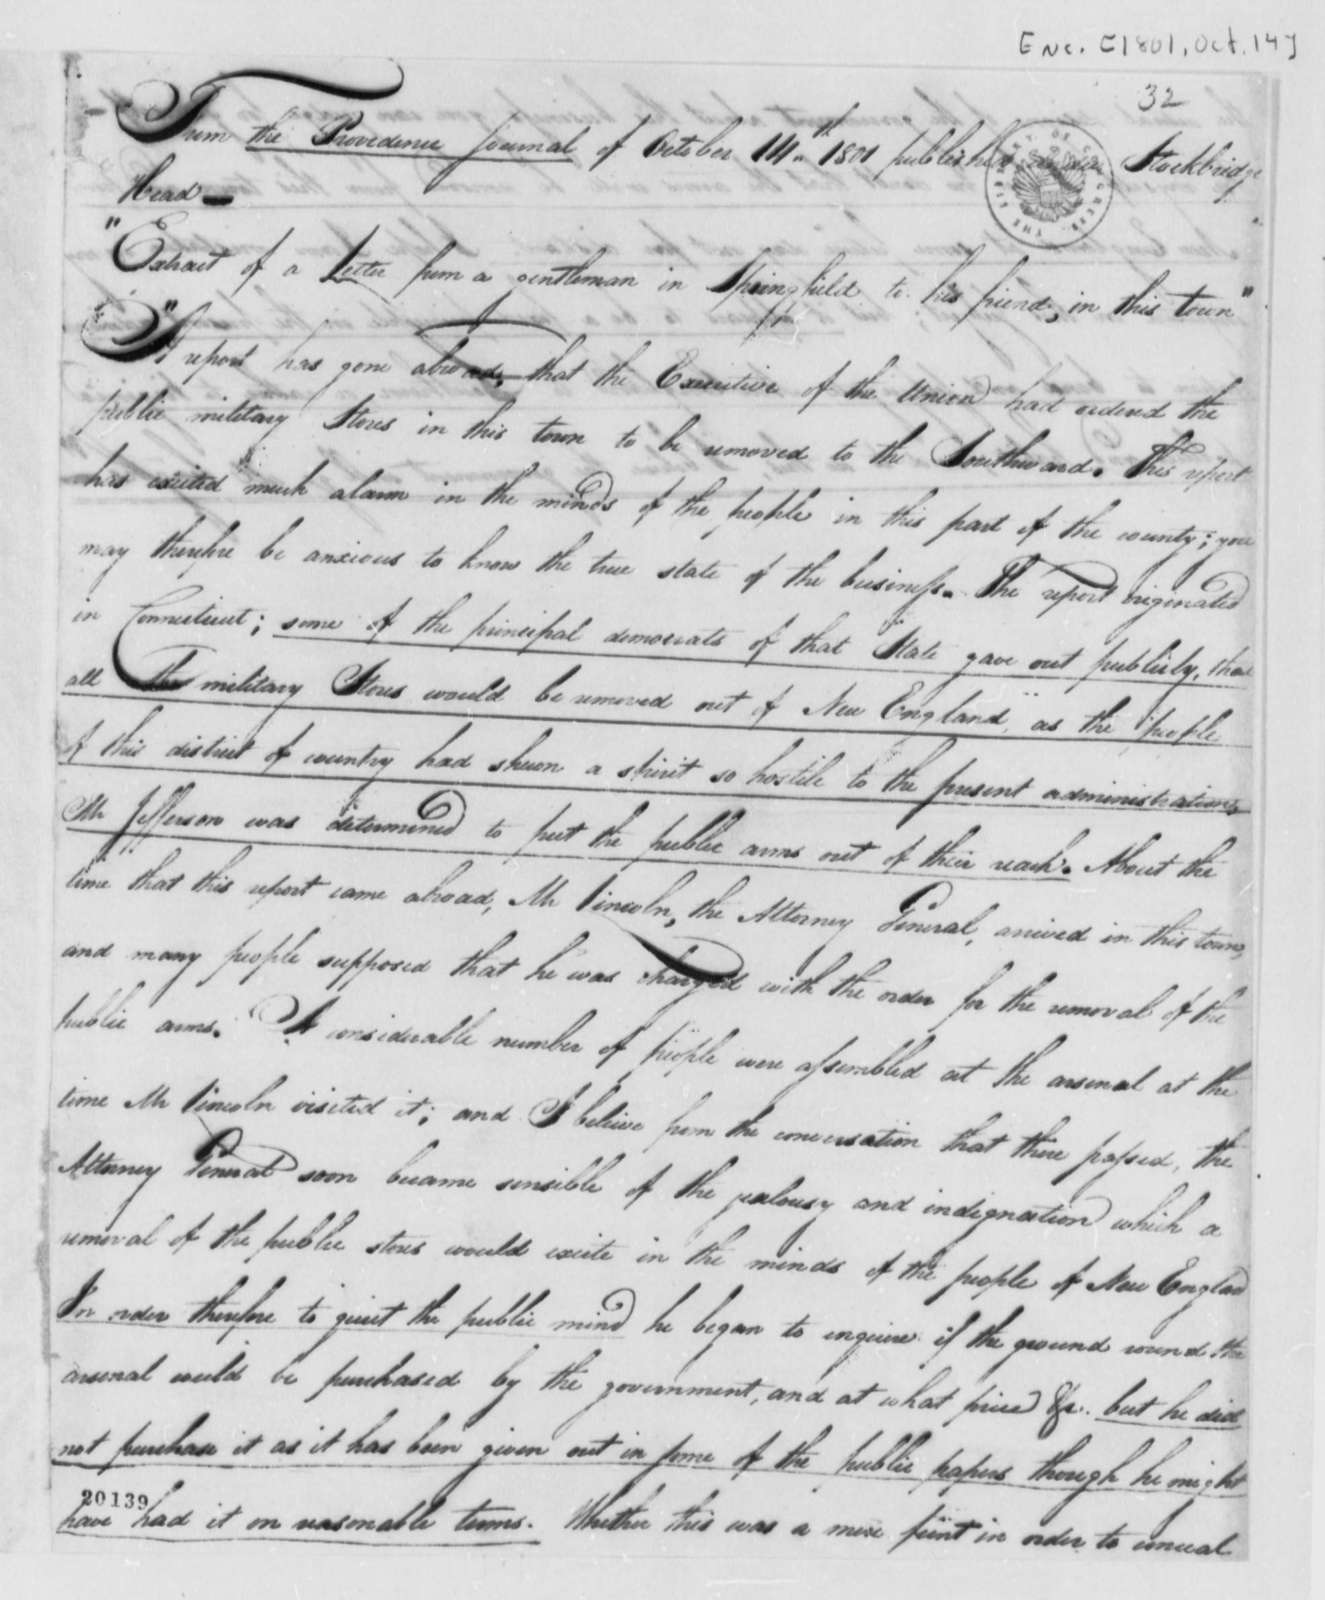 Providence, Rhode Island, Journal, October 14, 1801, Extract of Letter on Arms Removal